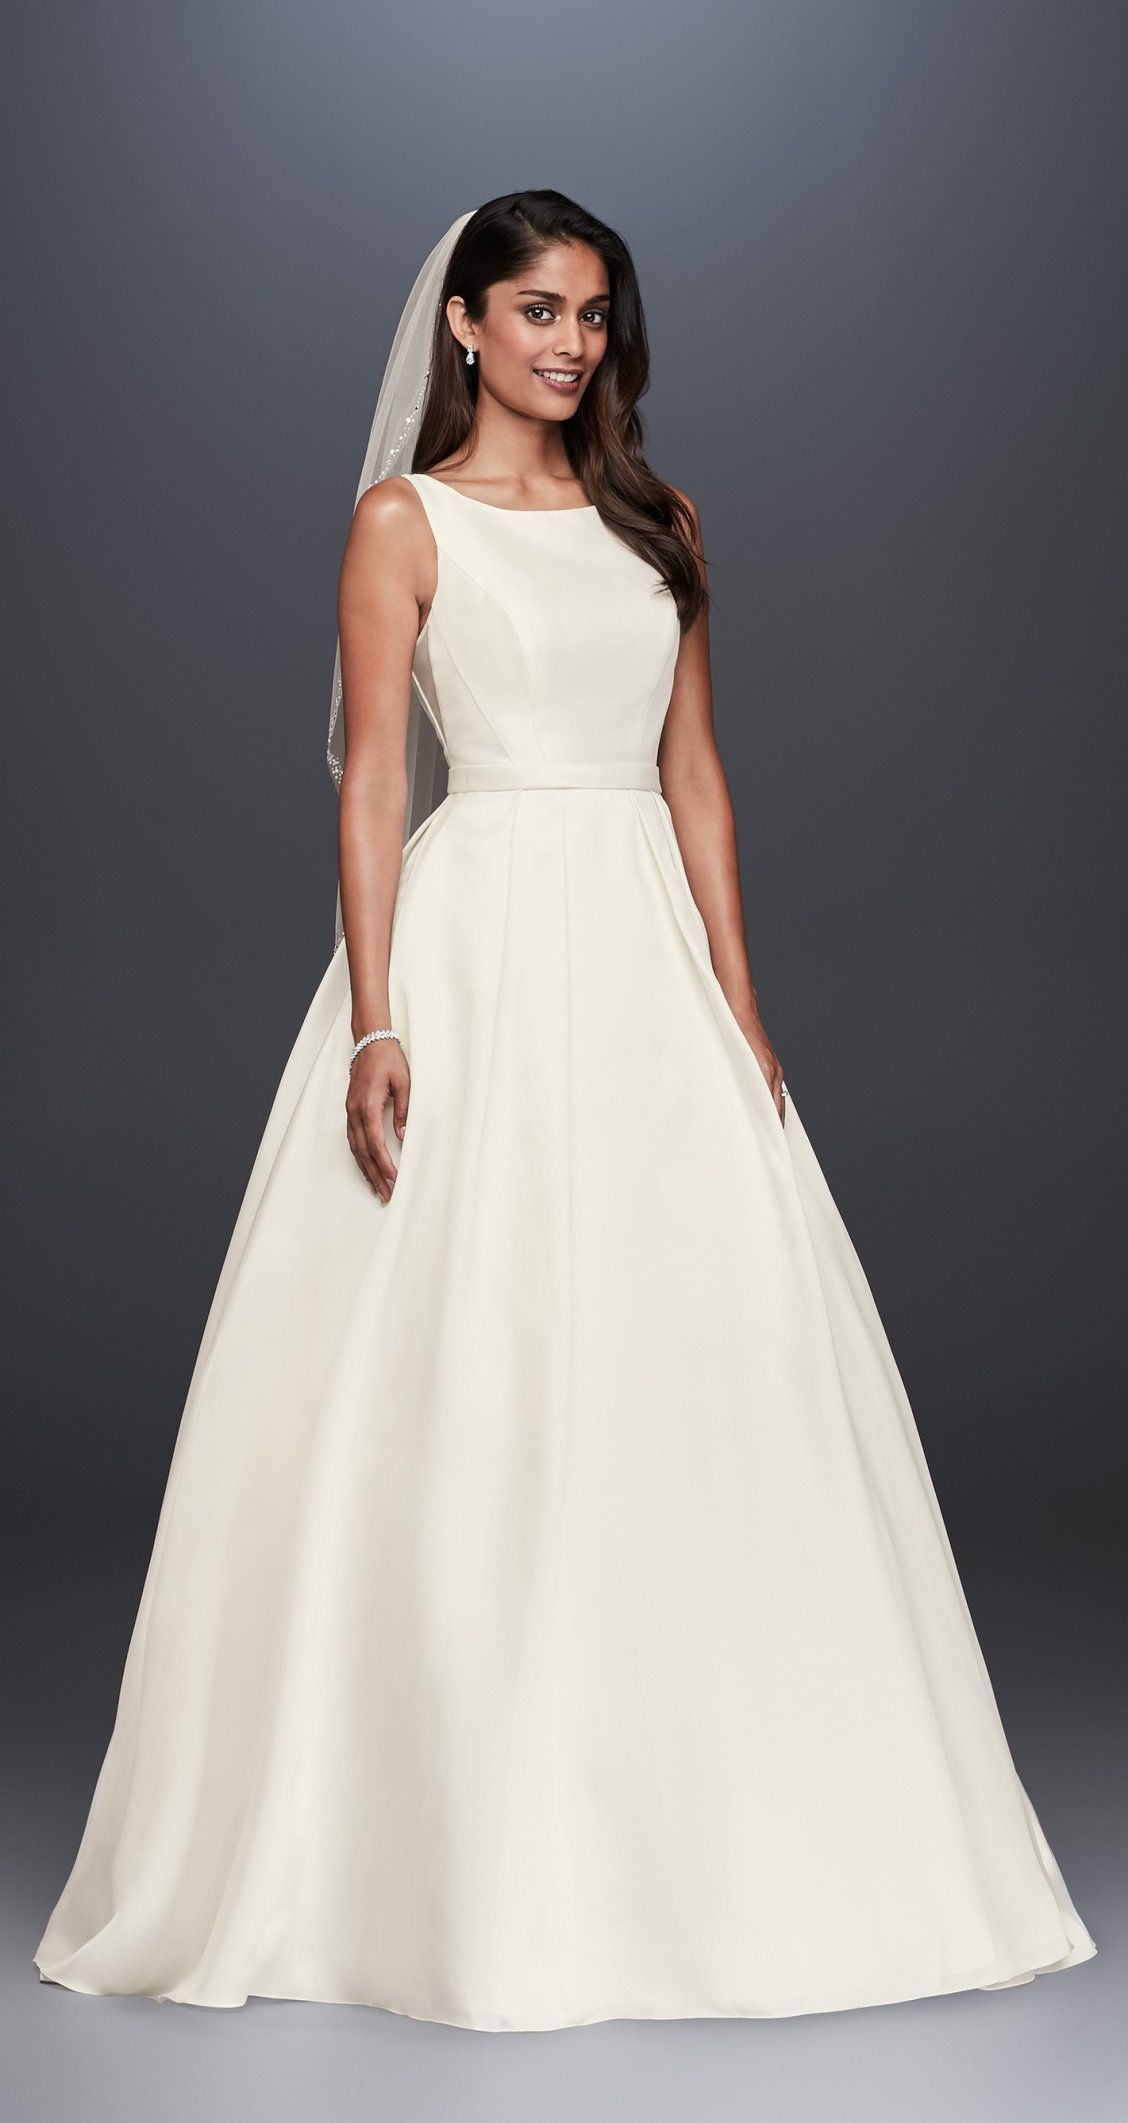 For a traditional wedding wear this highneck satin ball gown